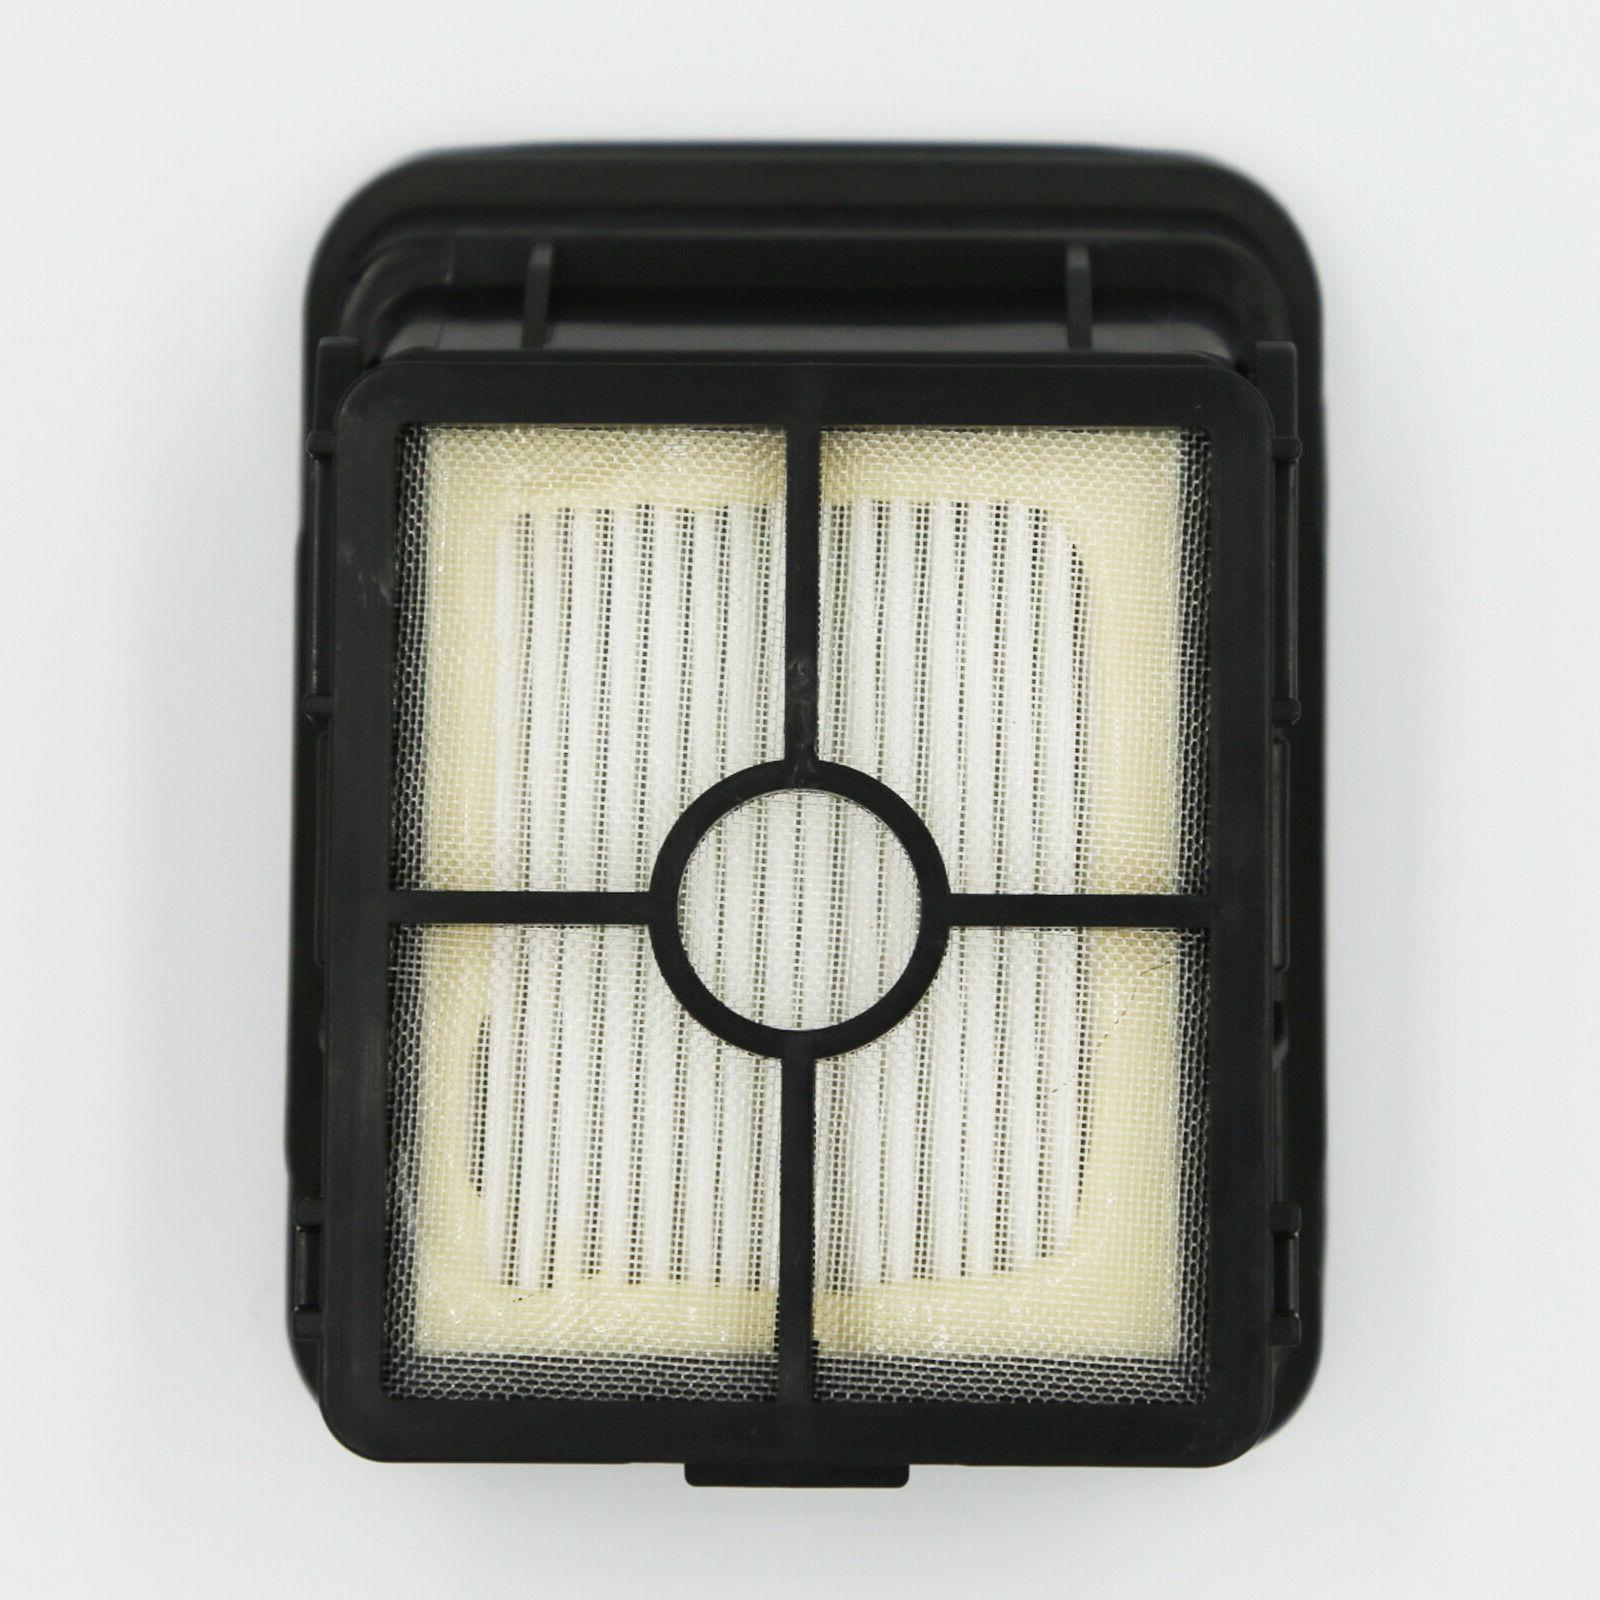 4yourhome Cleaner Filter Bissell Replaces